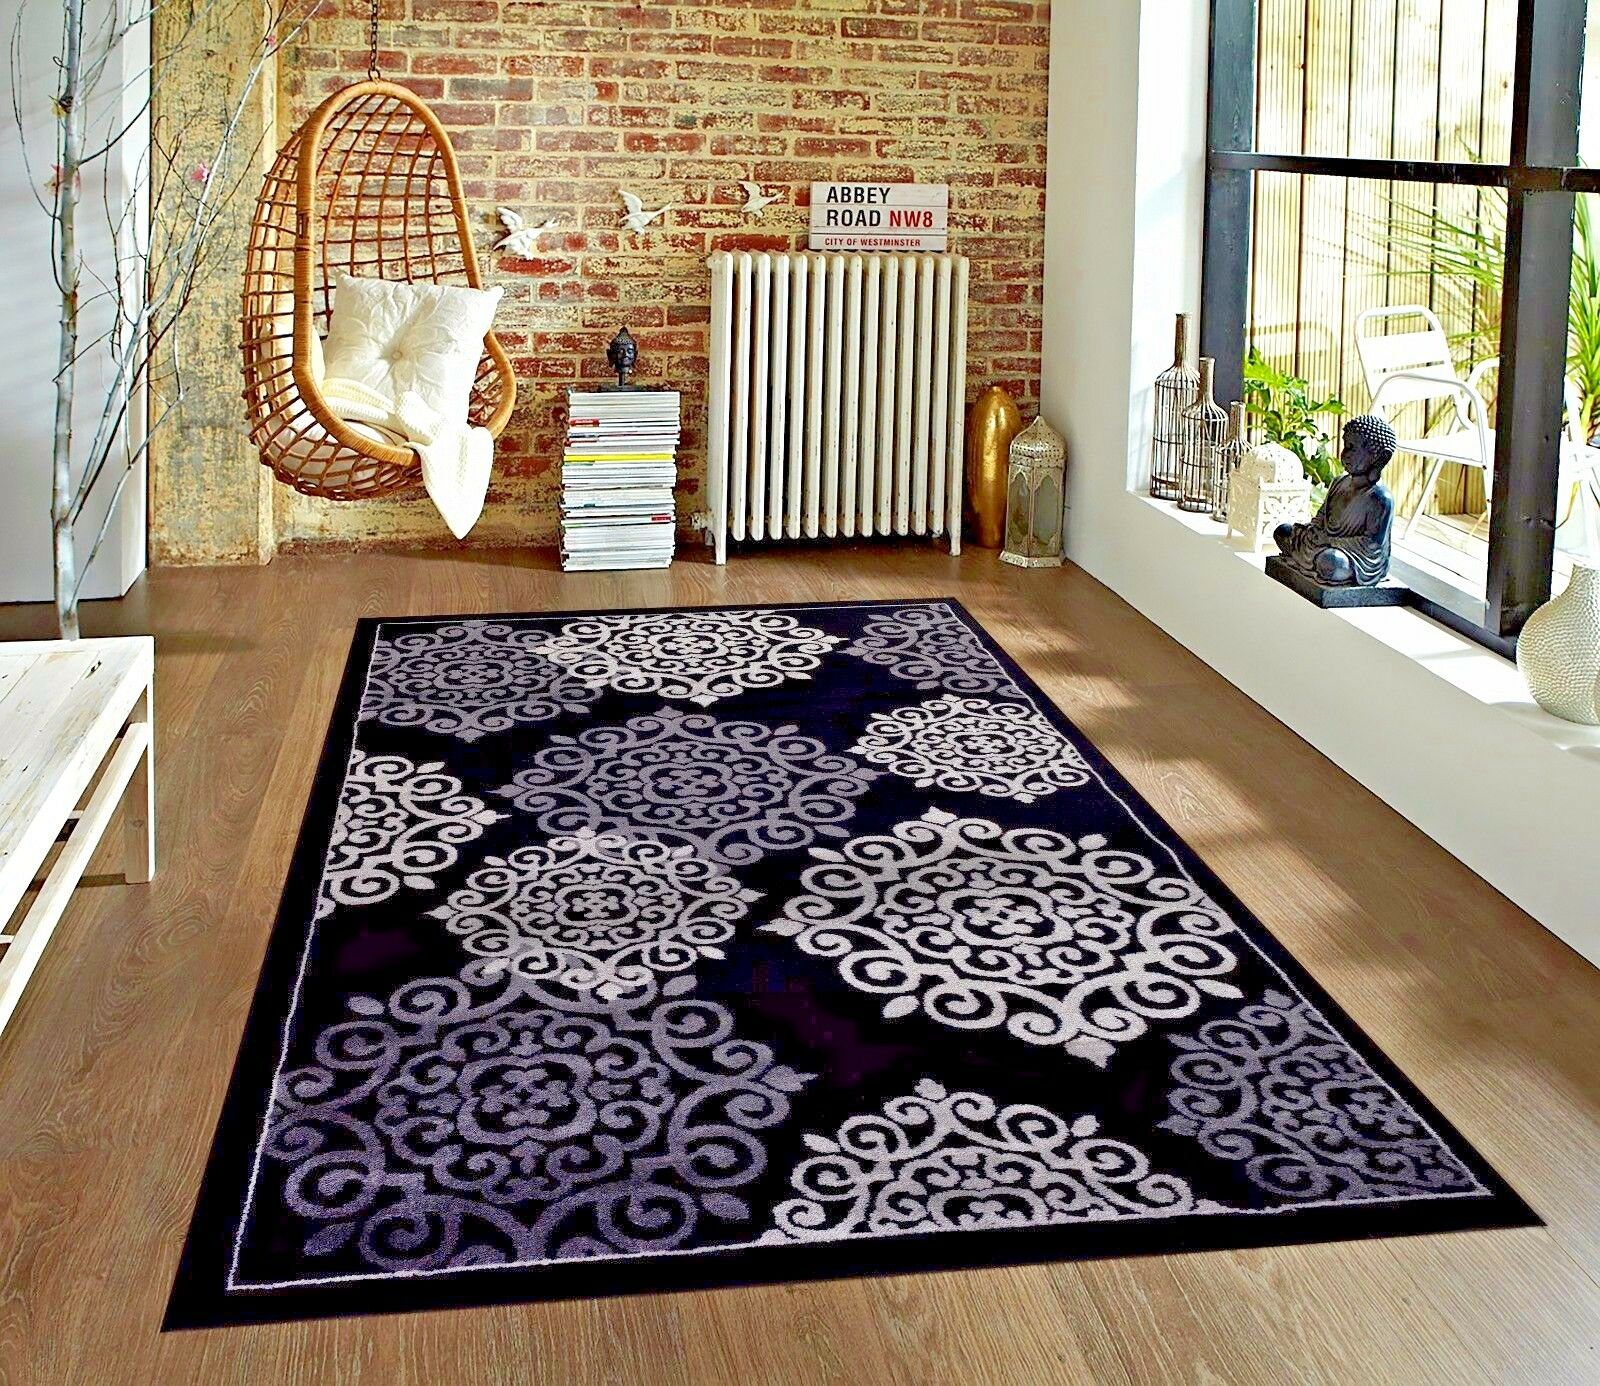 Living Room Rugs 5x7.Details About Rugs Area Rugs Carpets Area Rug Modern Floor Large Living Room Black 5x7 Rugs